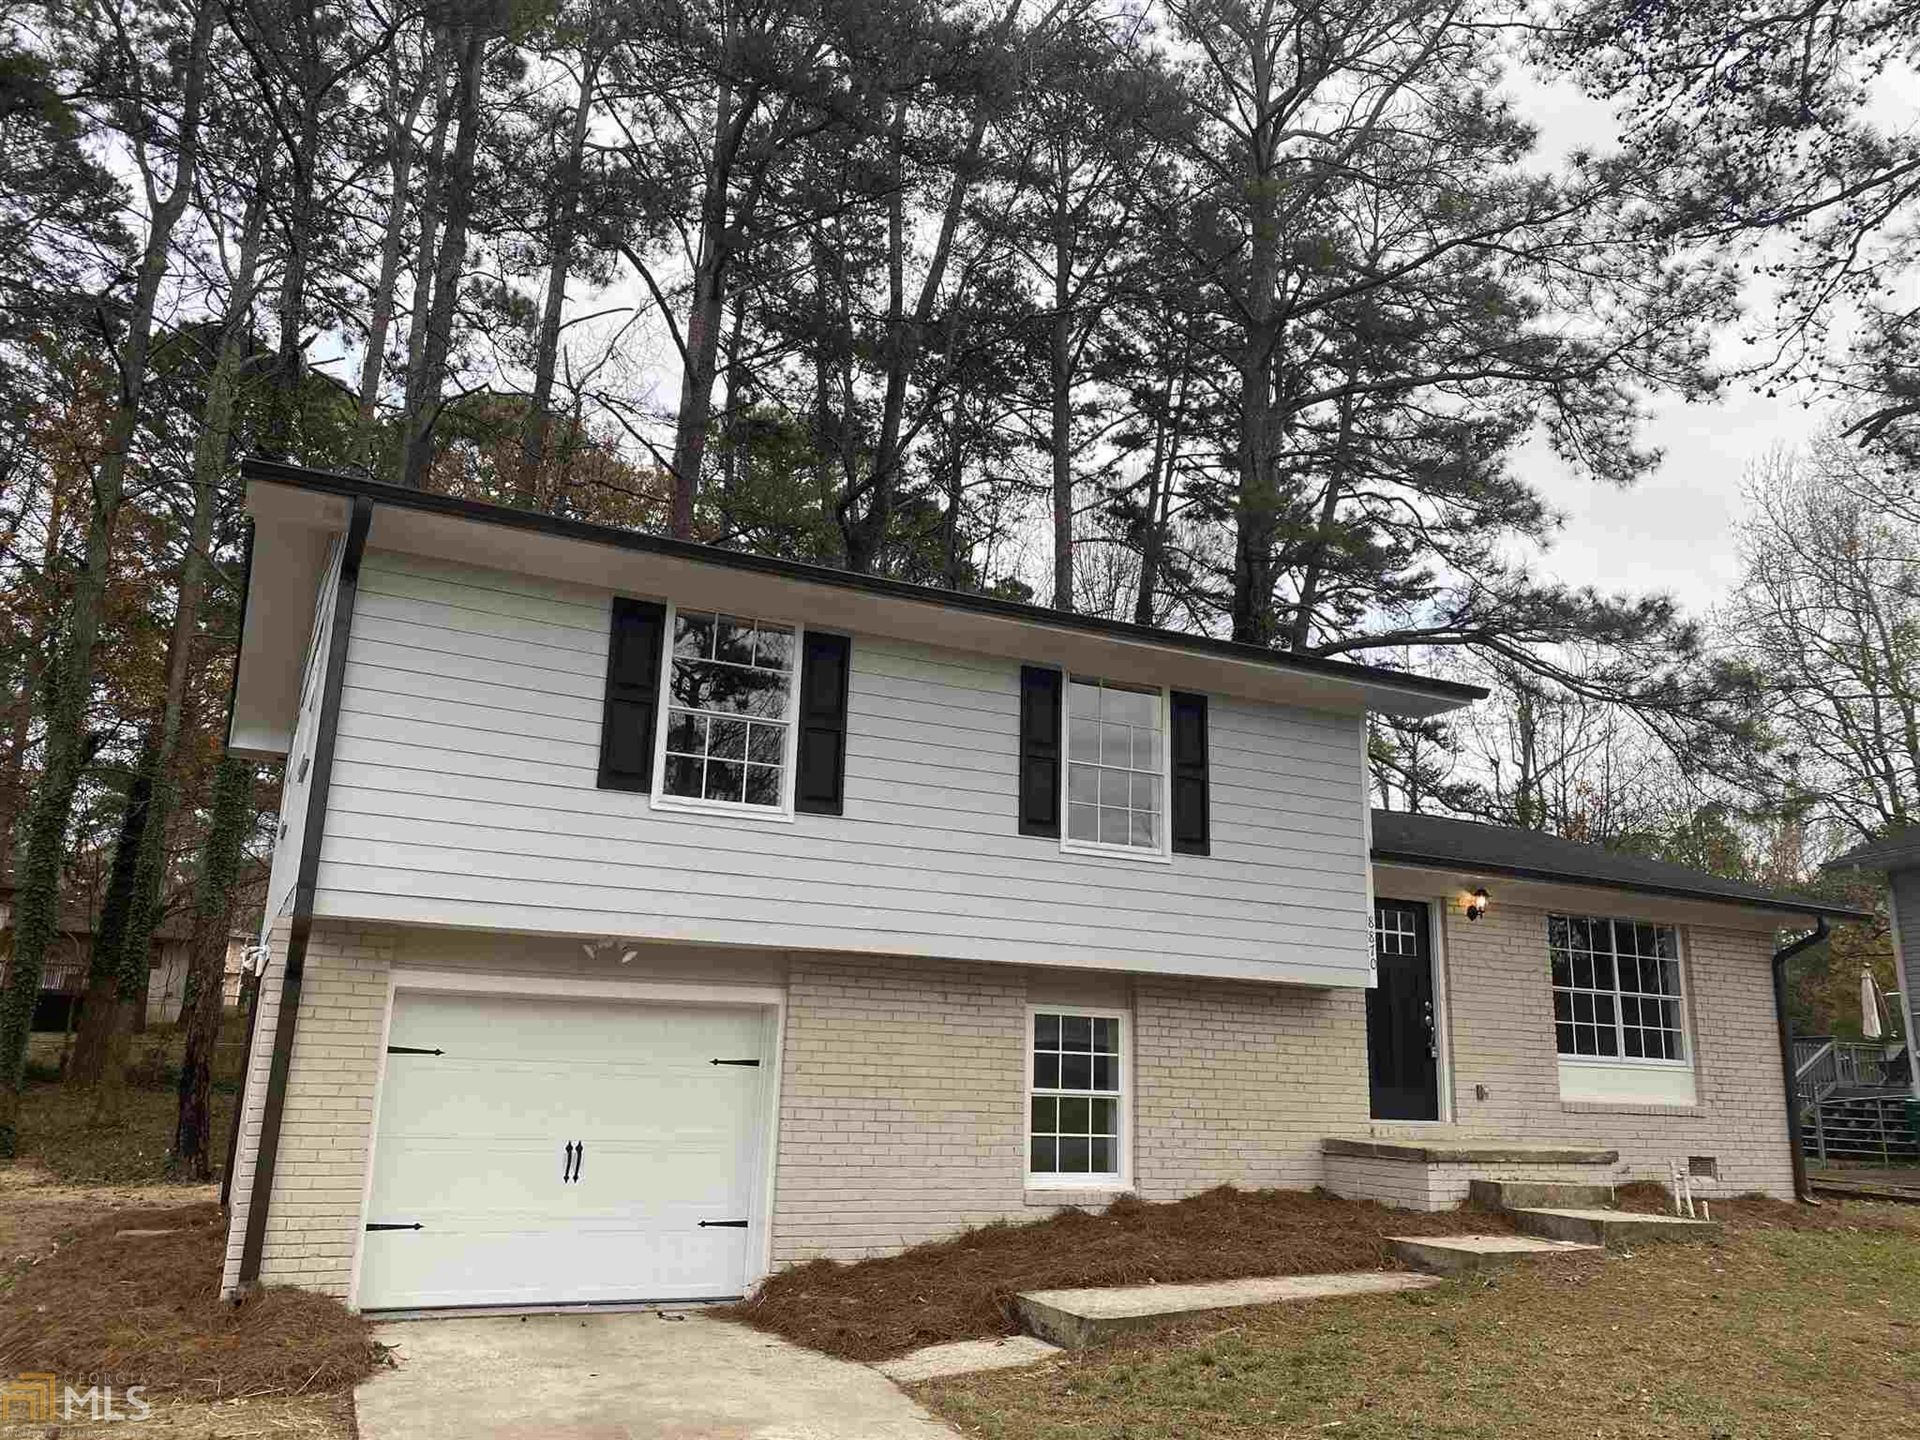 8870 Ashwood Dr, Riverdale, GA 30274 - MLS#: 8904116